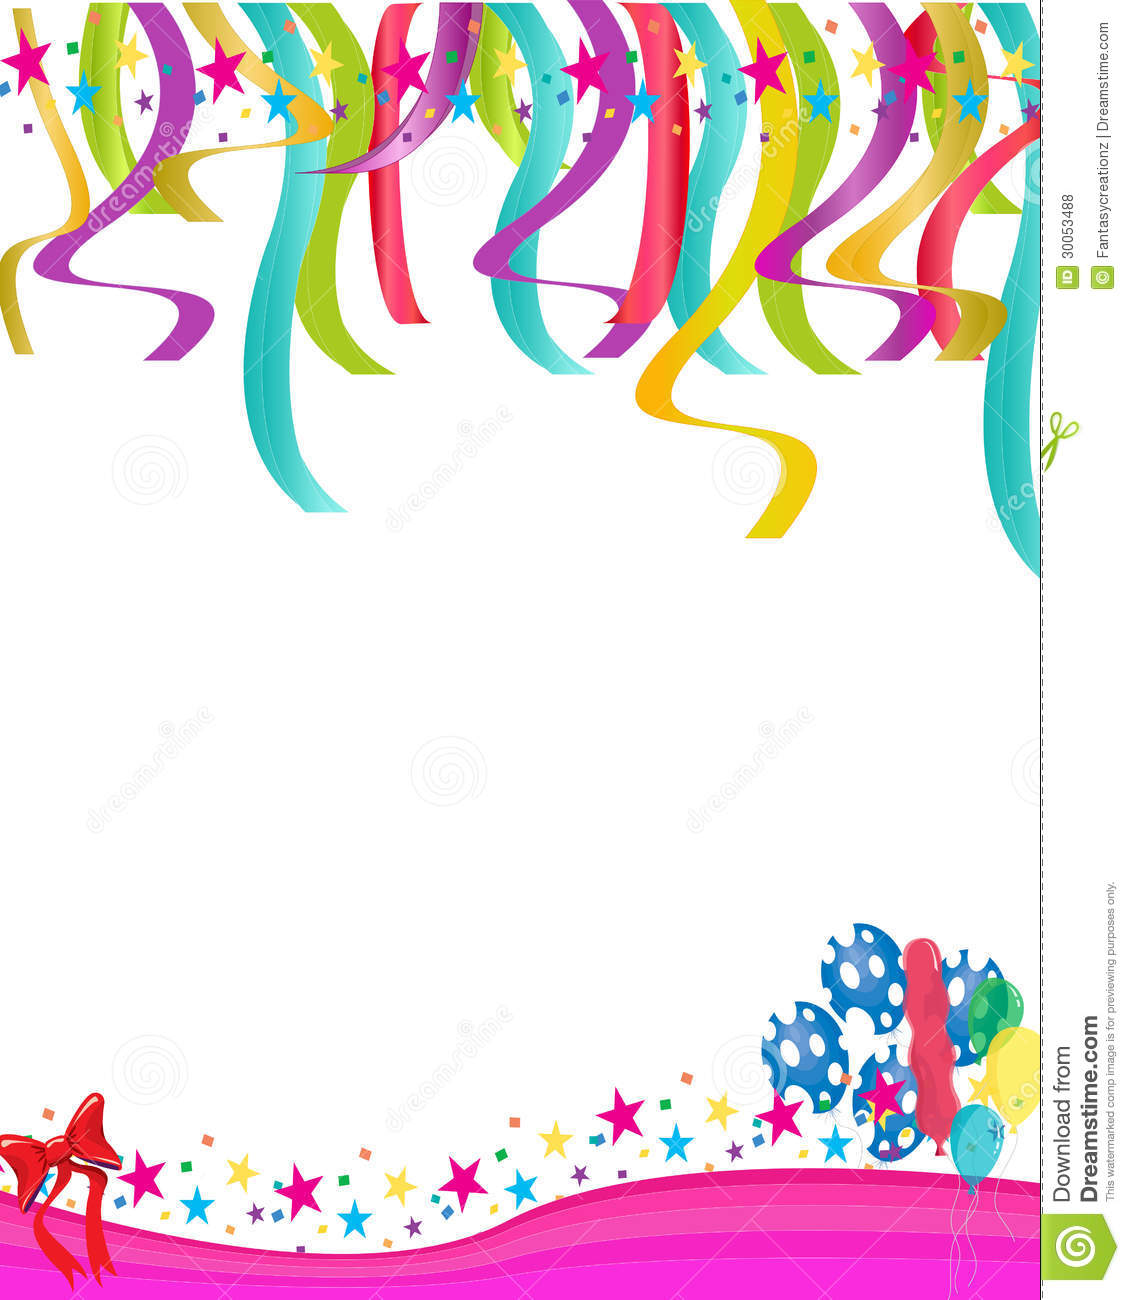 Colorful balloons and statrs illustration for birthday cards and party ...